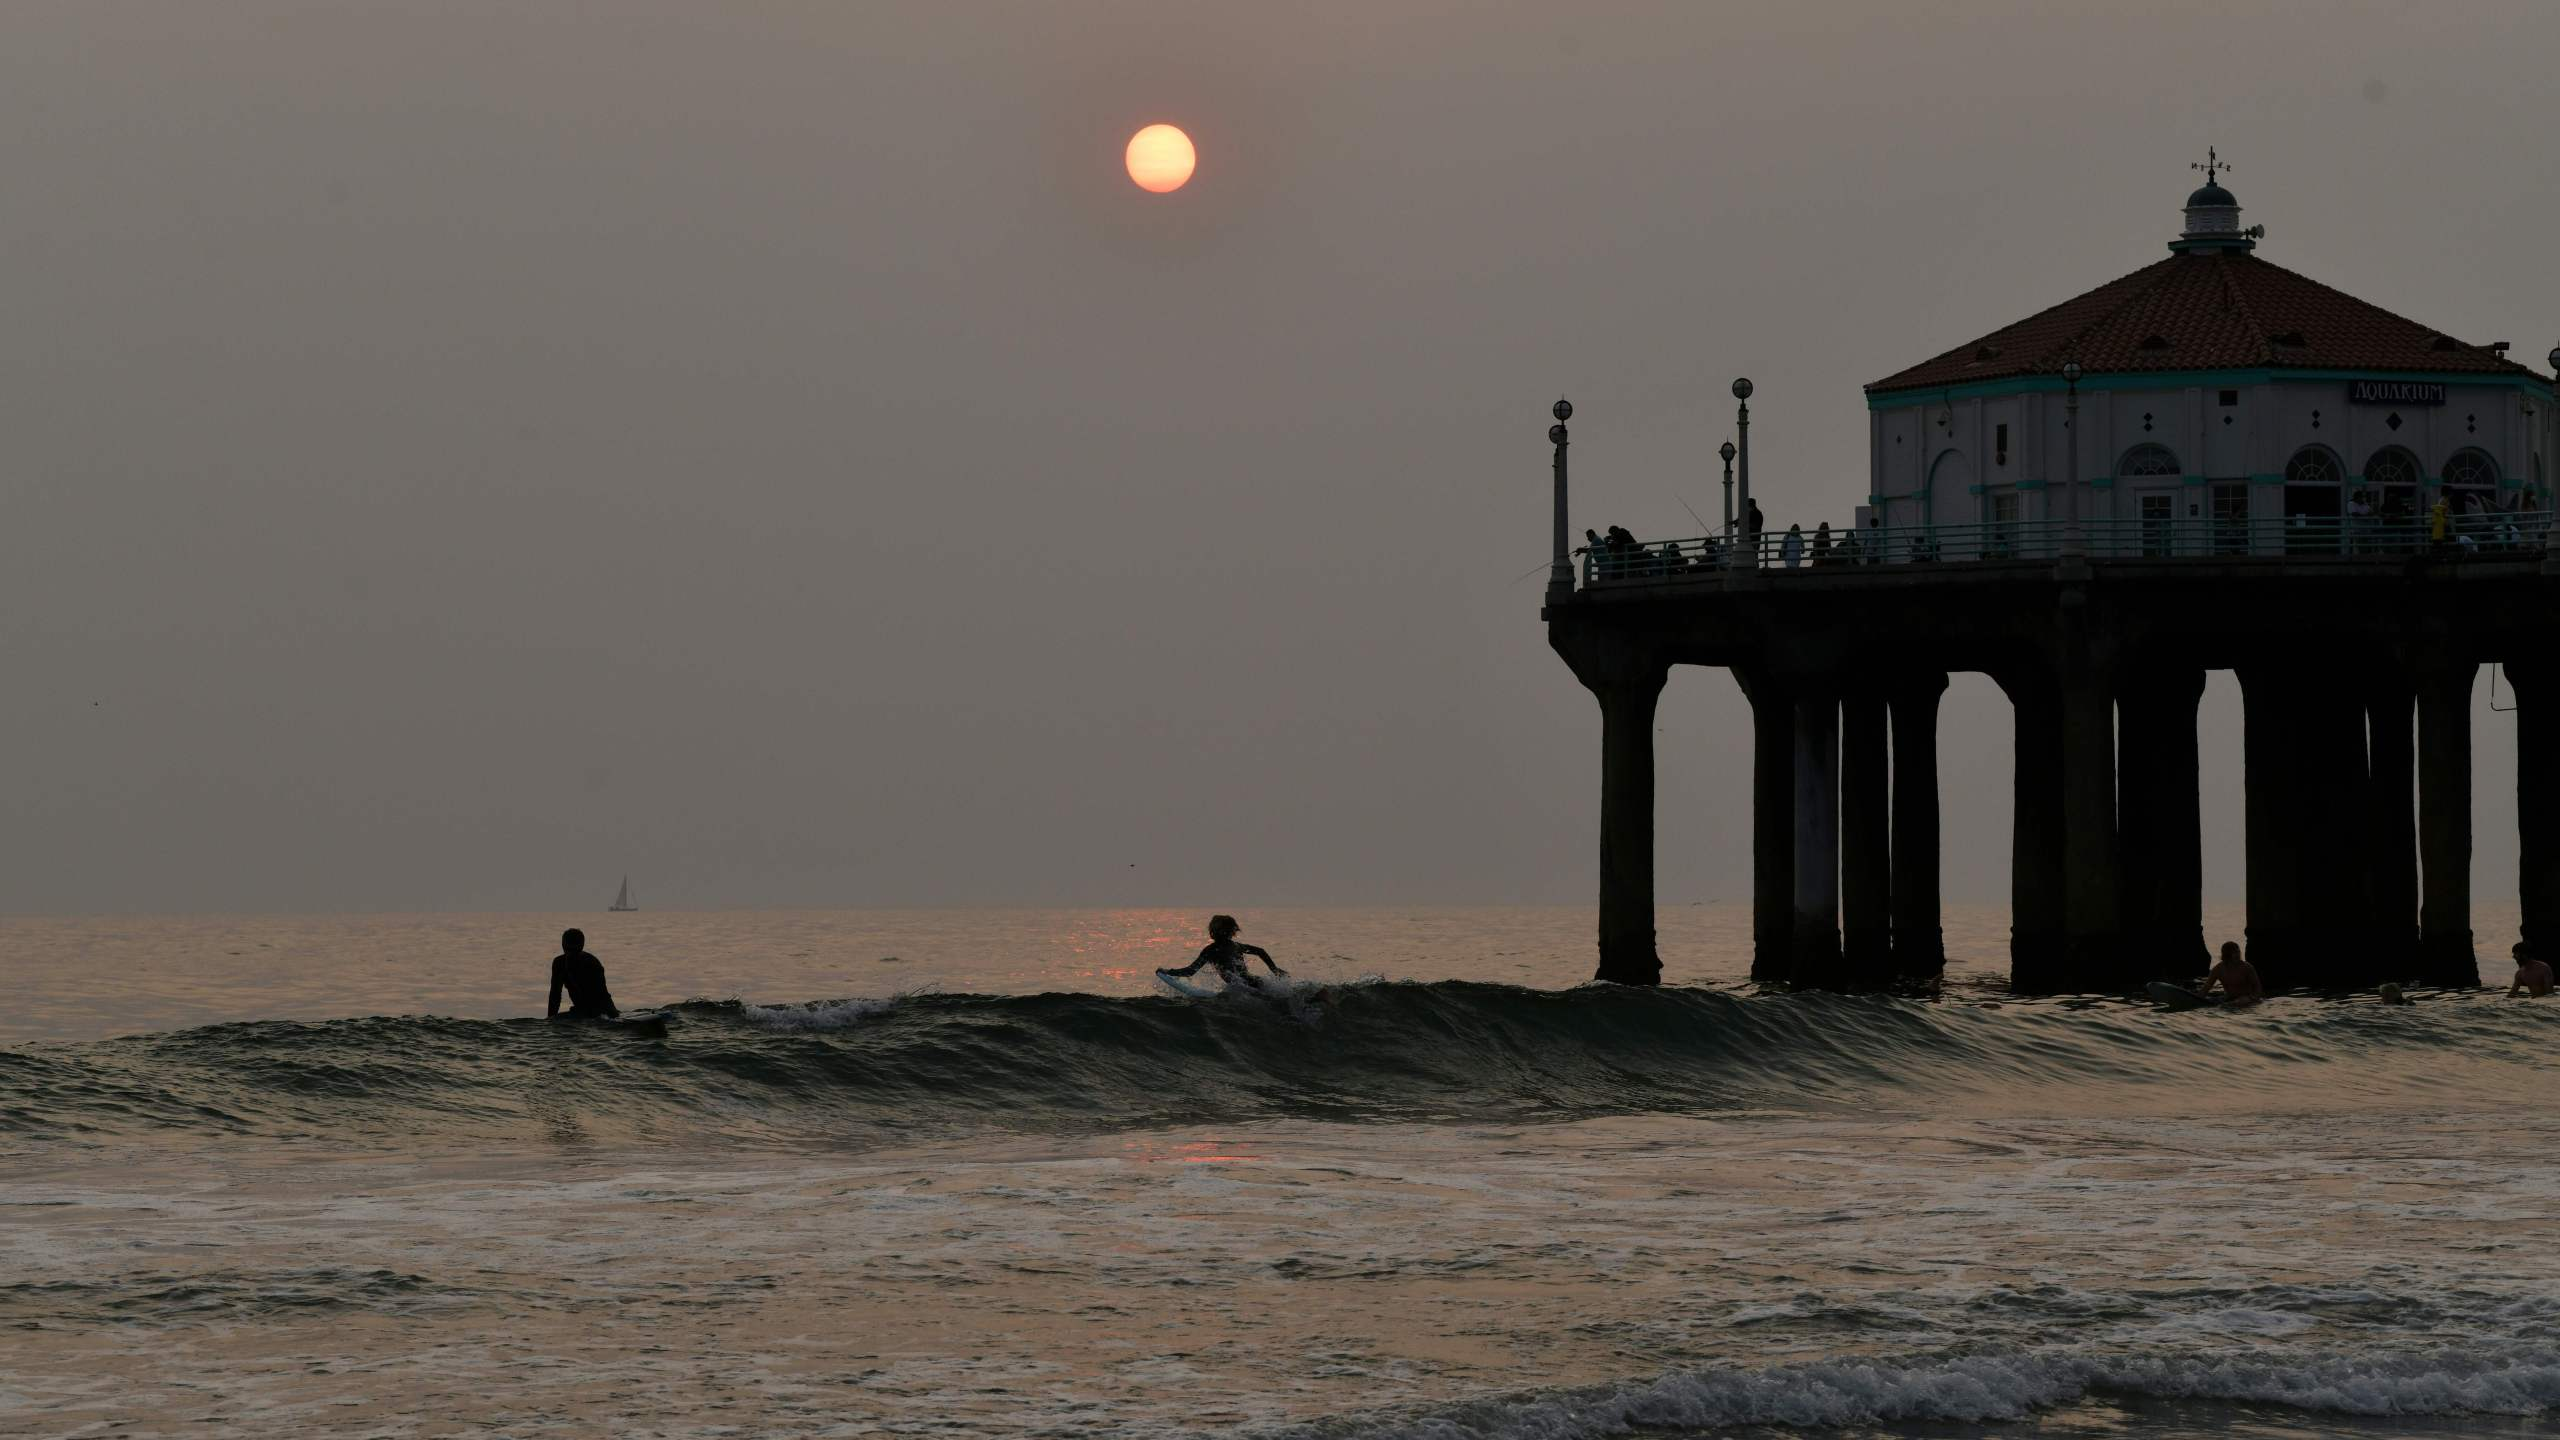 Surfers sit in the water at sunset during a heat wave on September 7, 2020 in Manhattan Beach, California. (Chris Delmas/AFP via Getty Images)